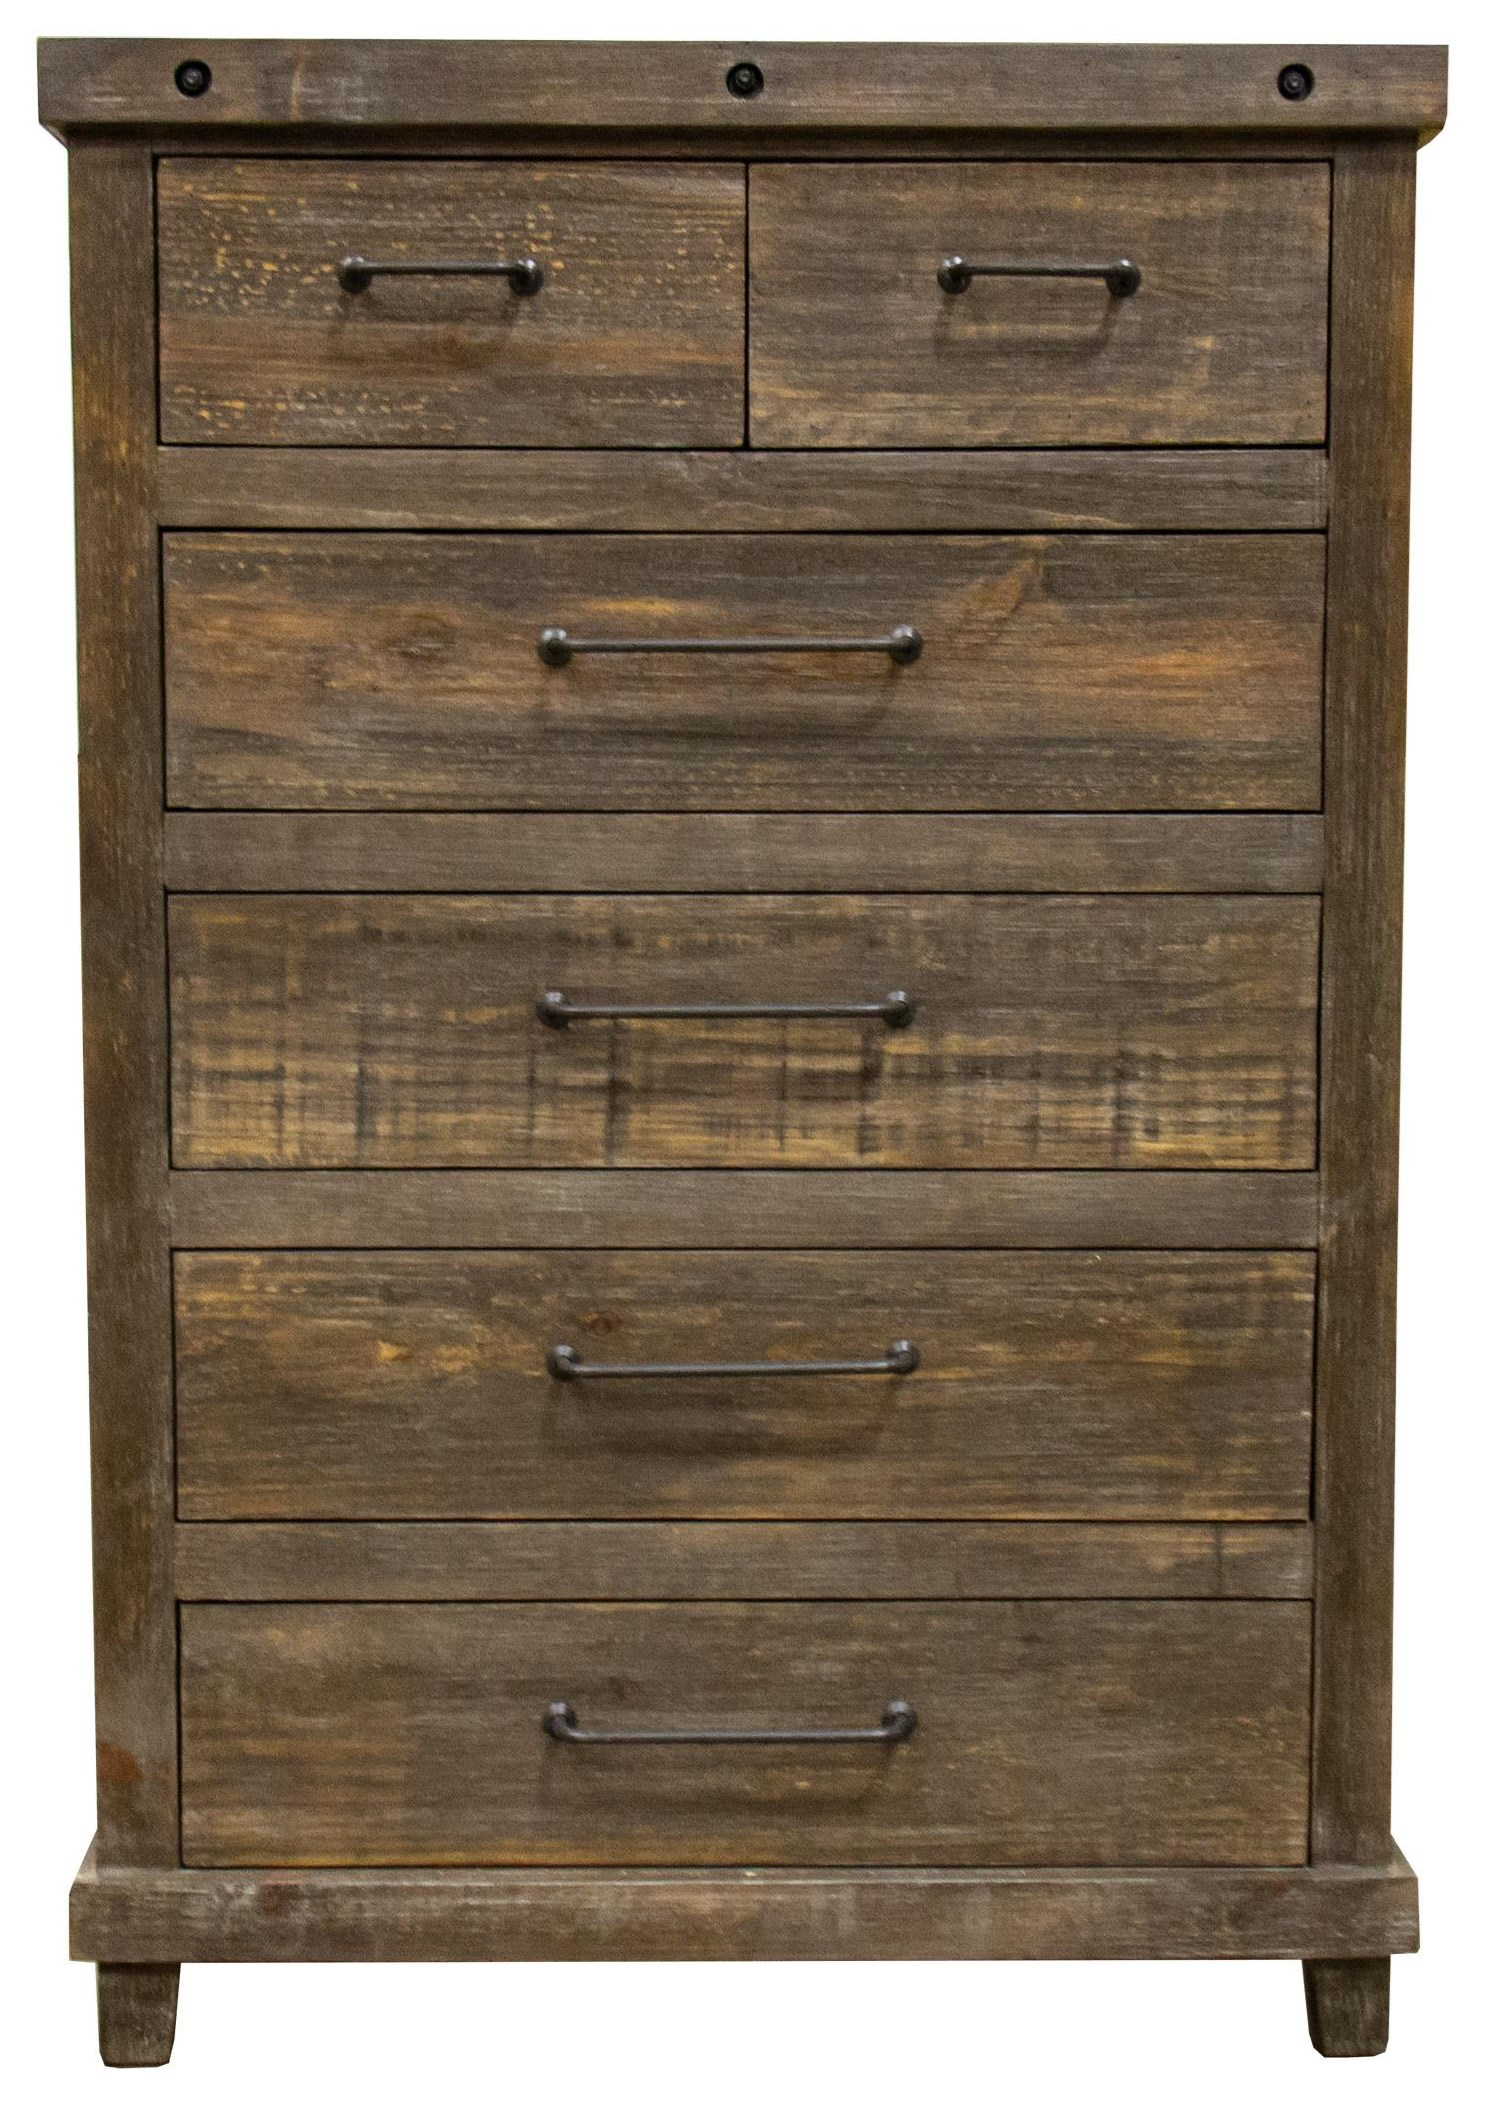 6 Drawer Chest Of Drawers Industrial 6 Drawer Chest By Vintage At Great American Home Store